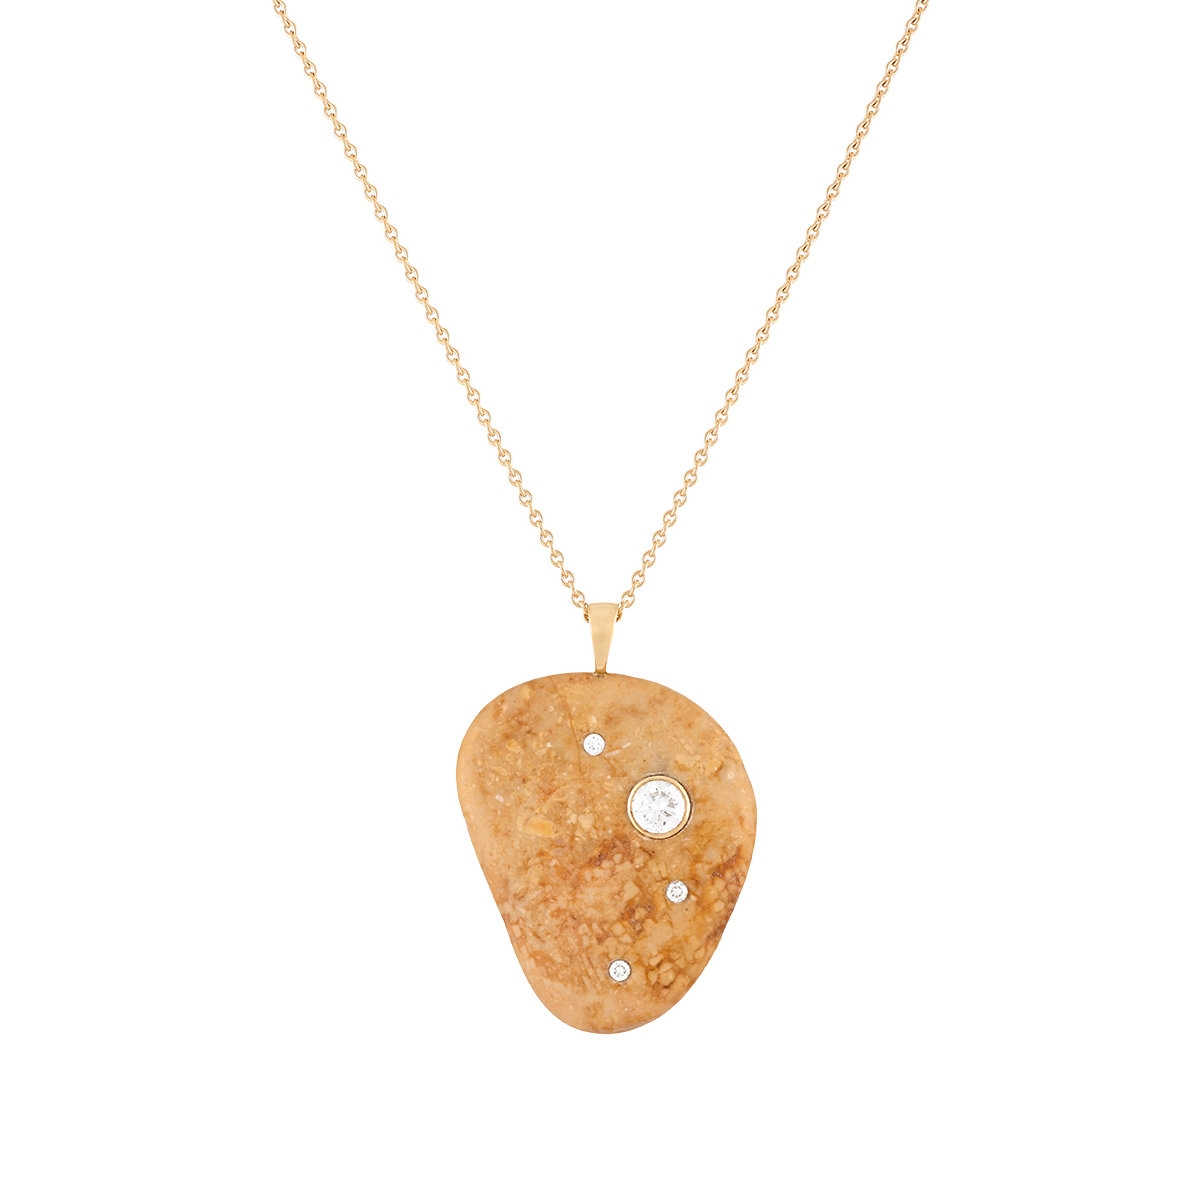 Cvc Stones Honey Pendant Necklace likewise 365769 Best Female Business News Presenter additionally Grand Ma Lighting Console Training besides 21436802 moreover Jennifer Aniston 2015 Sag Awards In Los Angeles 263250. on oscar meyer ring